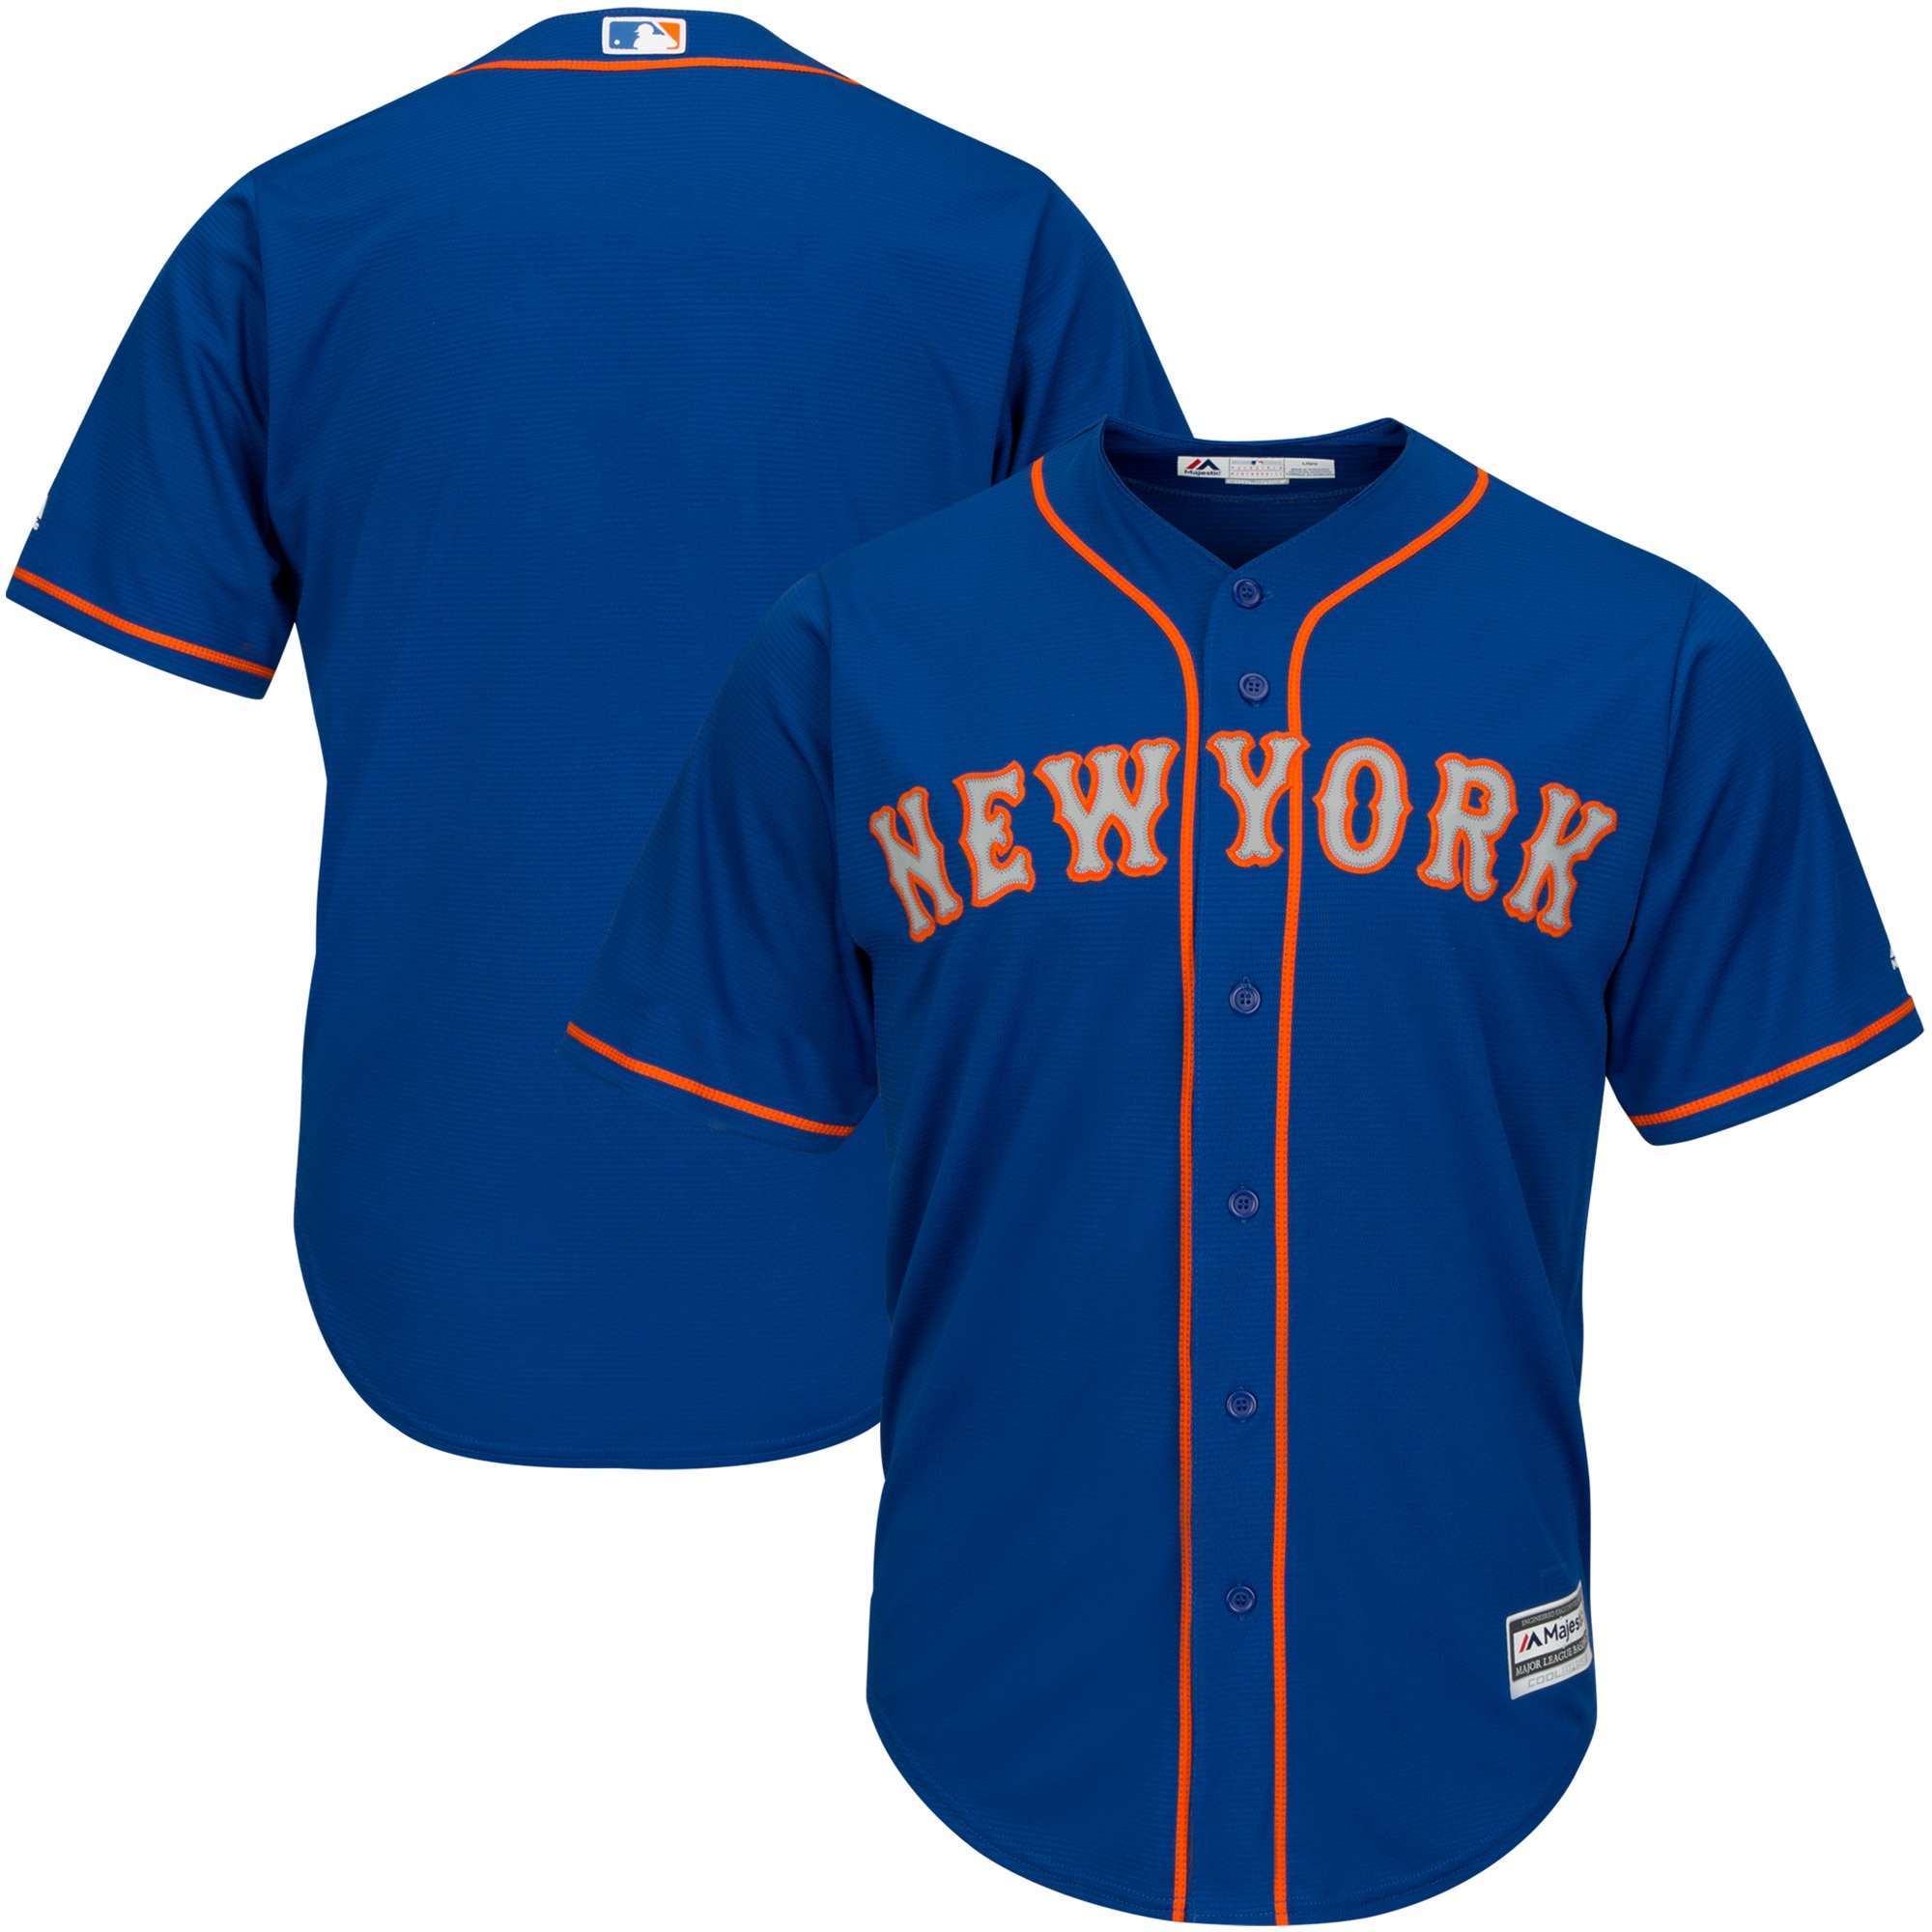 New York Mets Majestic Official Cool Base Jersey - Royal -